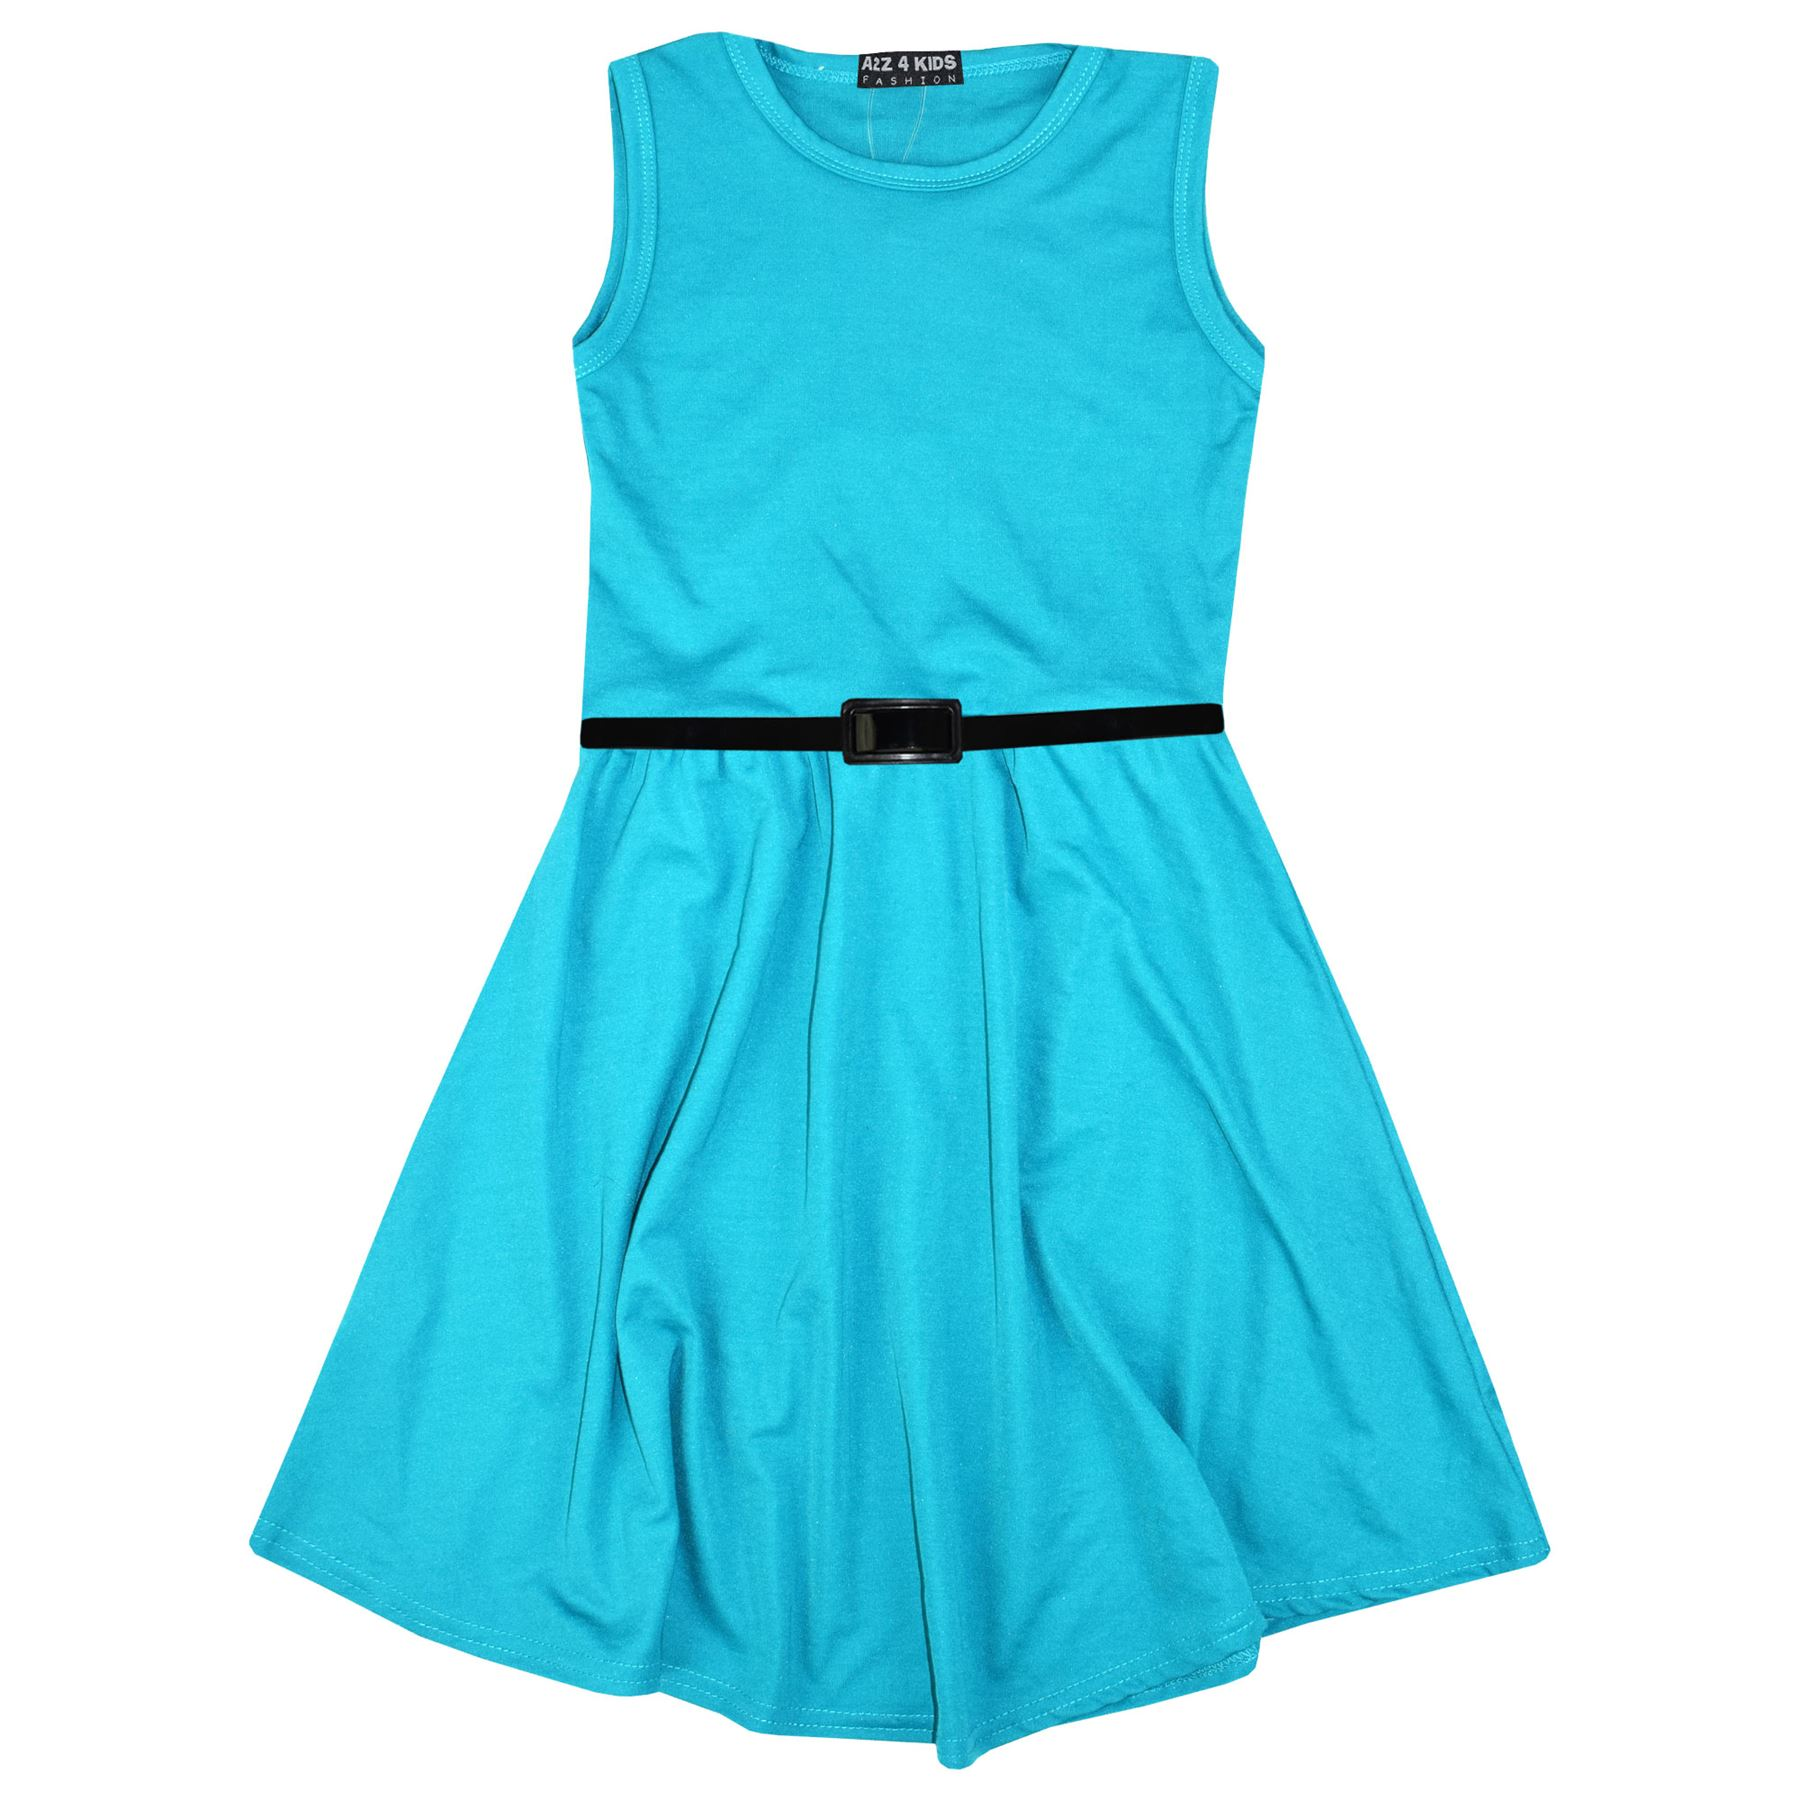 Girls-Skater-Dress-Kids-Party-Dresses-With-Free-Belt-5-6-7-8-9-10-11-12-13-Years thumbnail 79